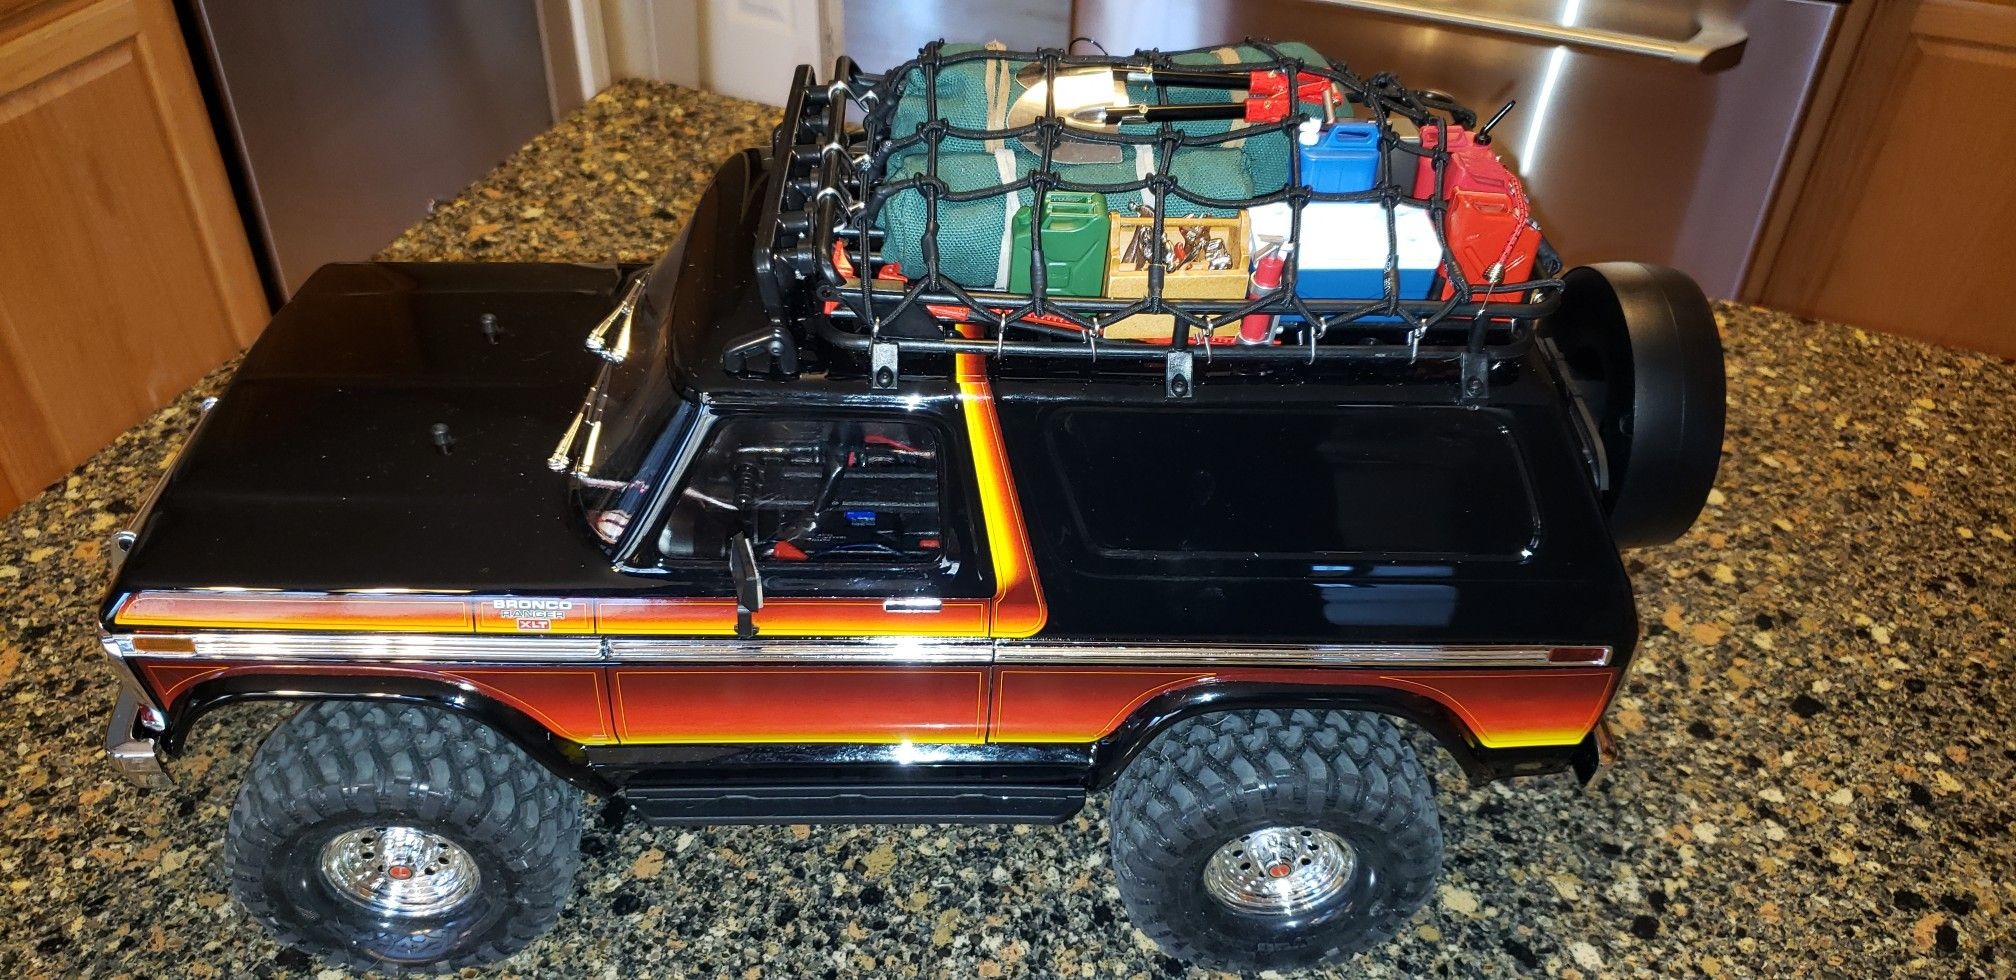 Traxxas Trx4 Ford Bronco With Roof Rack Cargo Net Roof Mount Light Bar And Many 1 10 Scale Accessories As Going Super Scale Out On This Vintage 1979 4x4 Craw